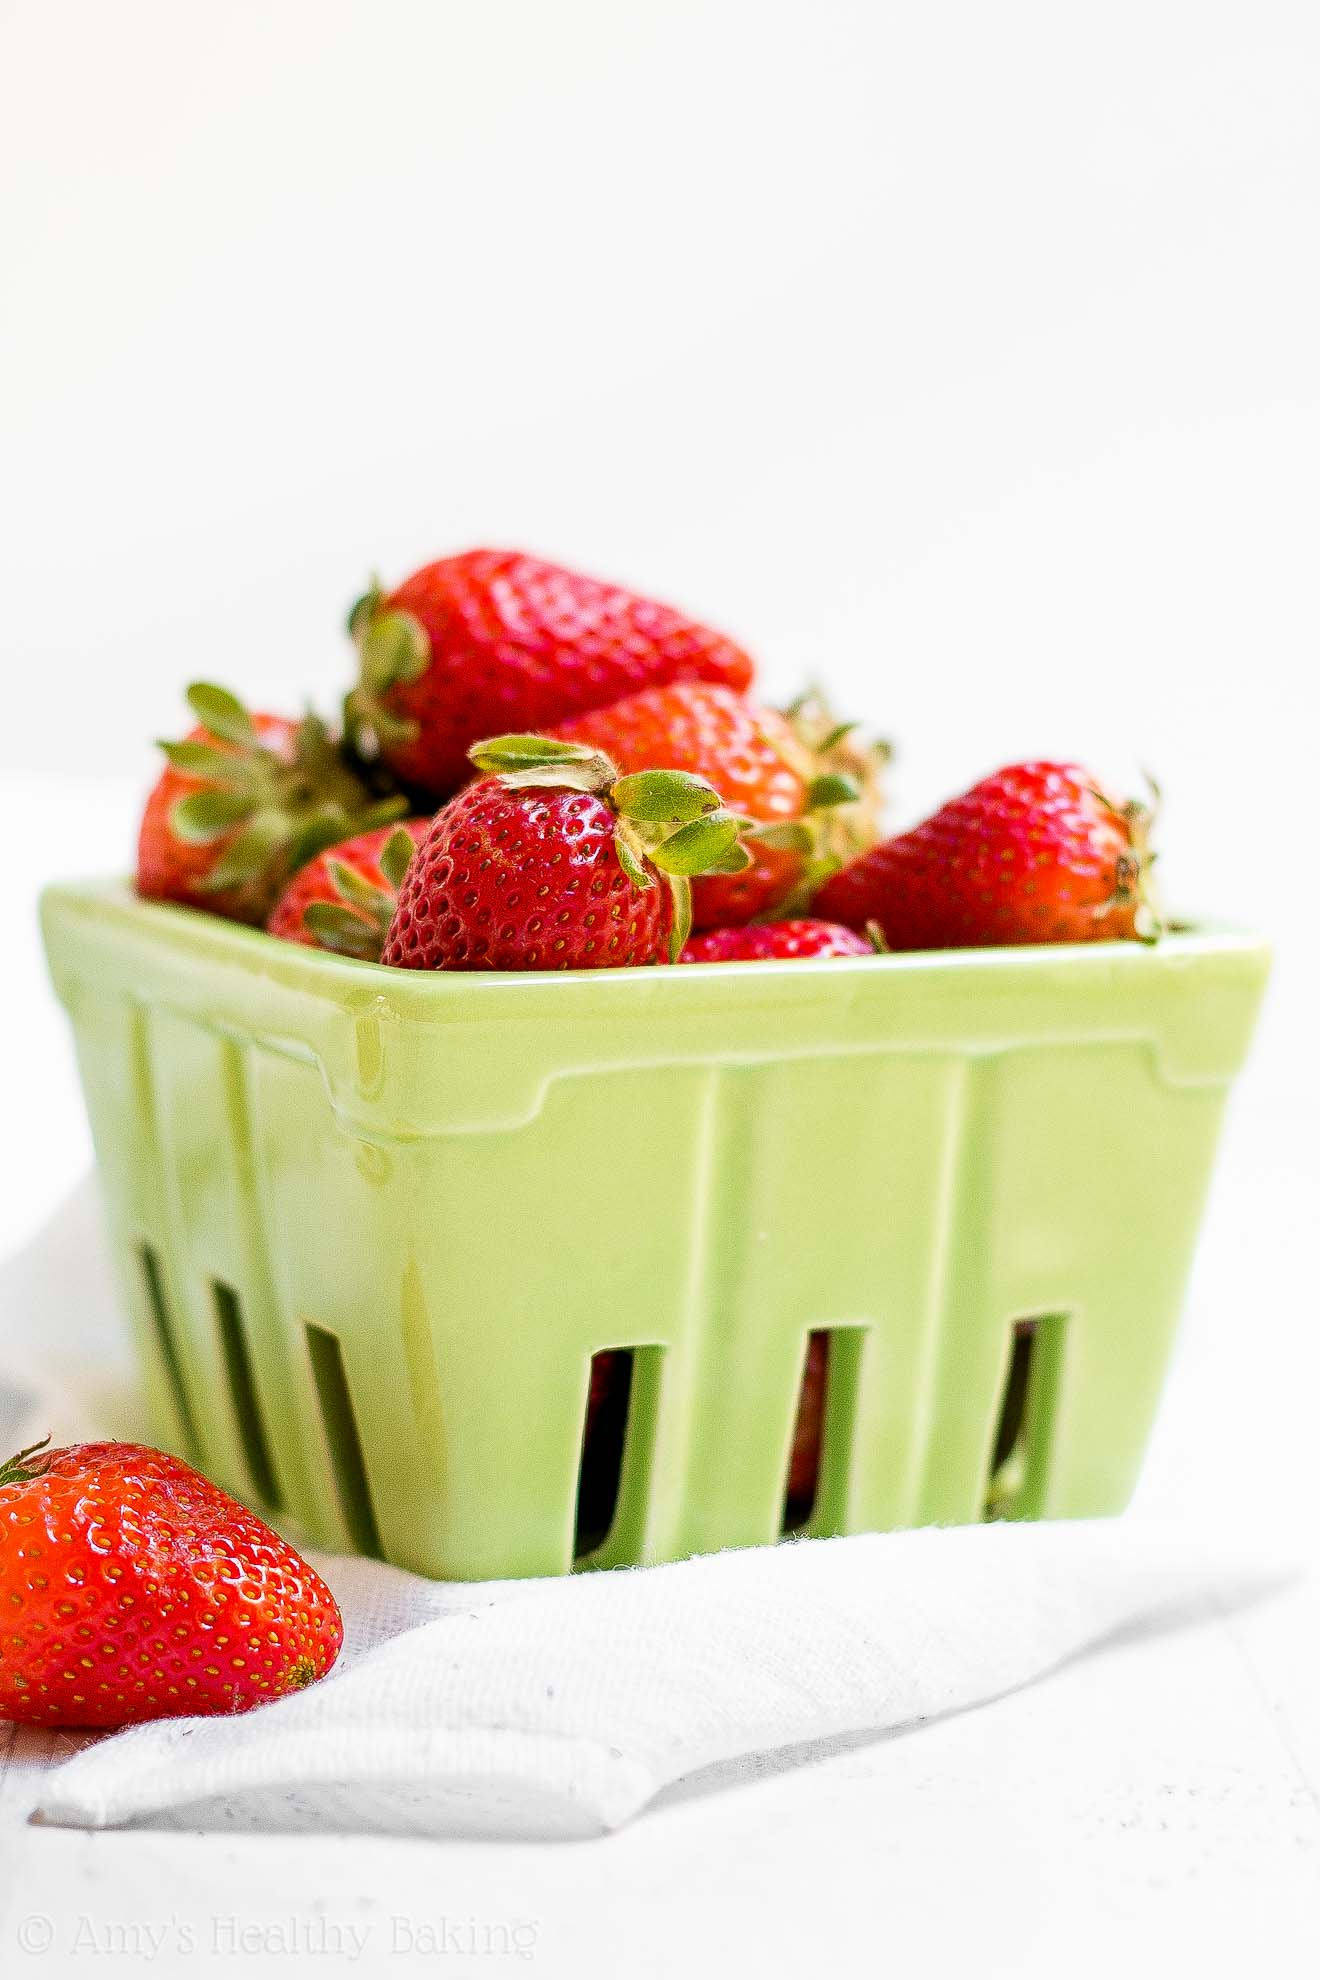 Fresh strawberries in a green ceramic container